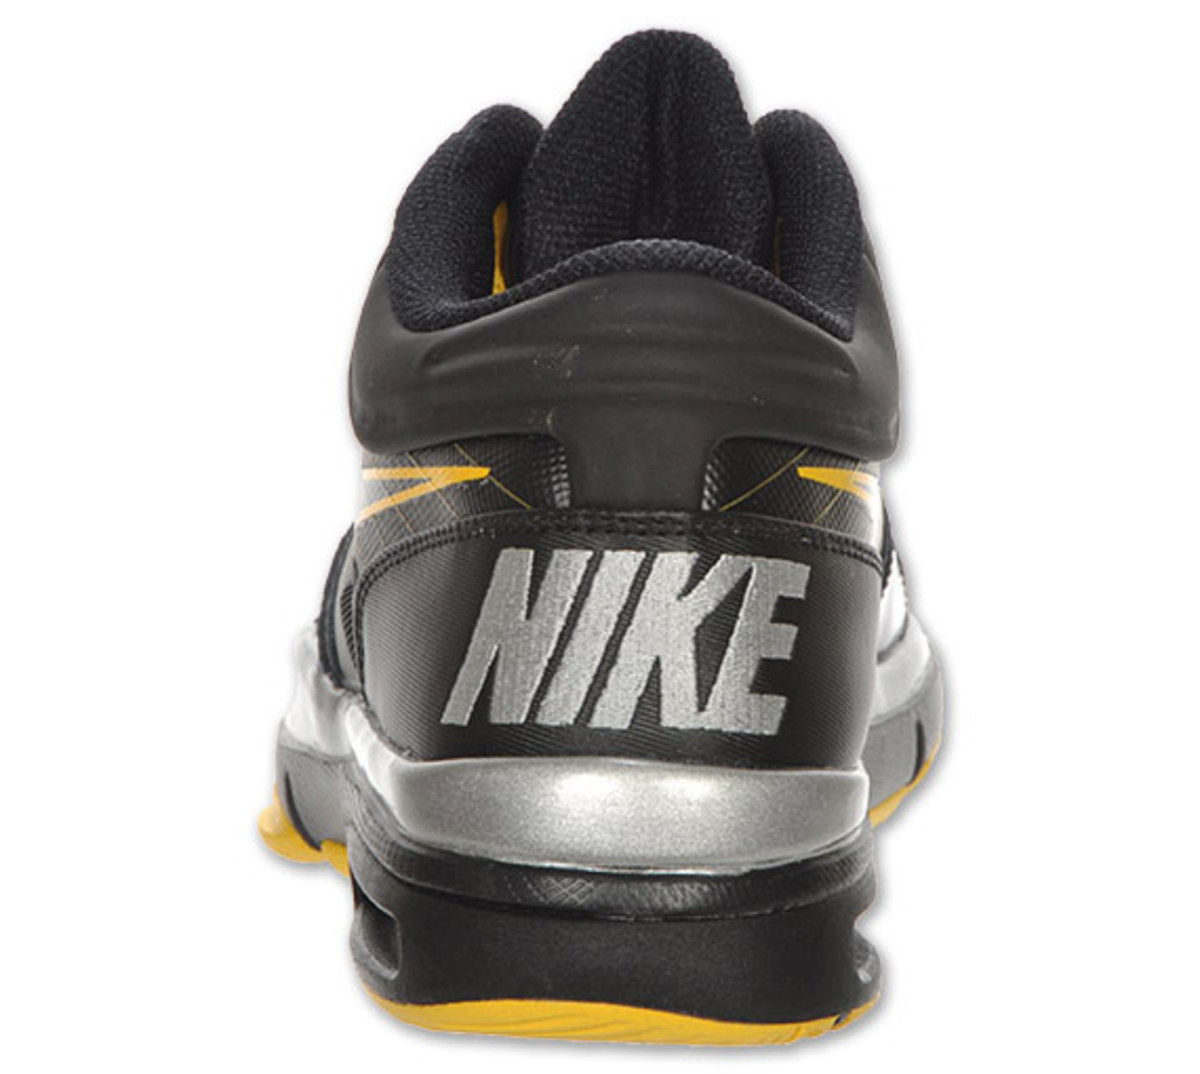 nike-trainer-mid-12-livestrong-05